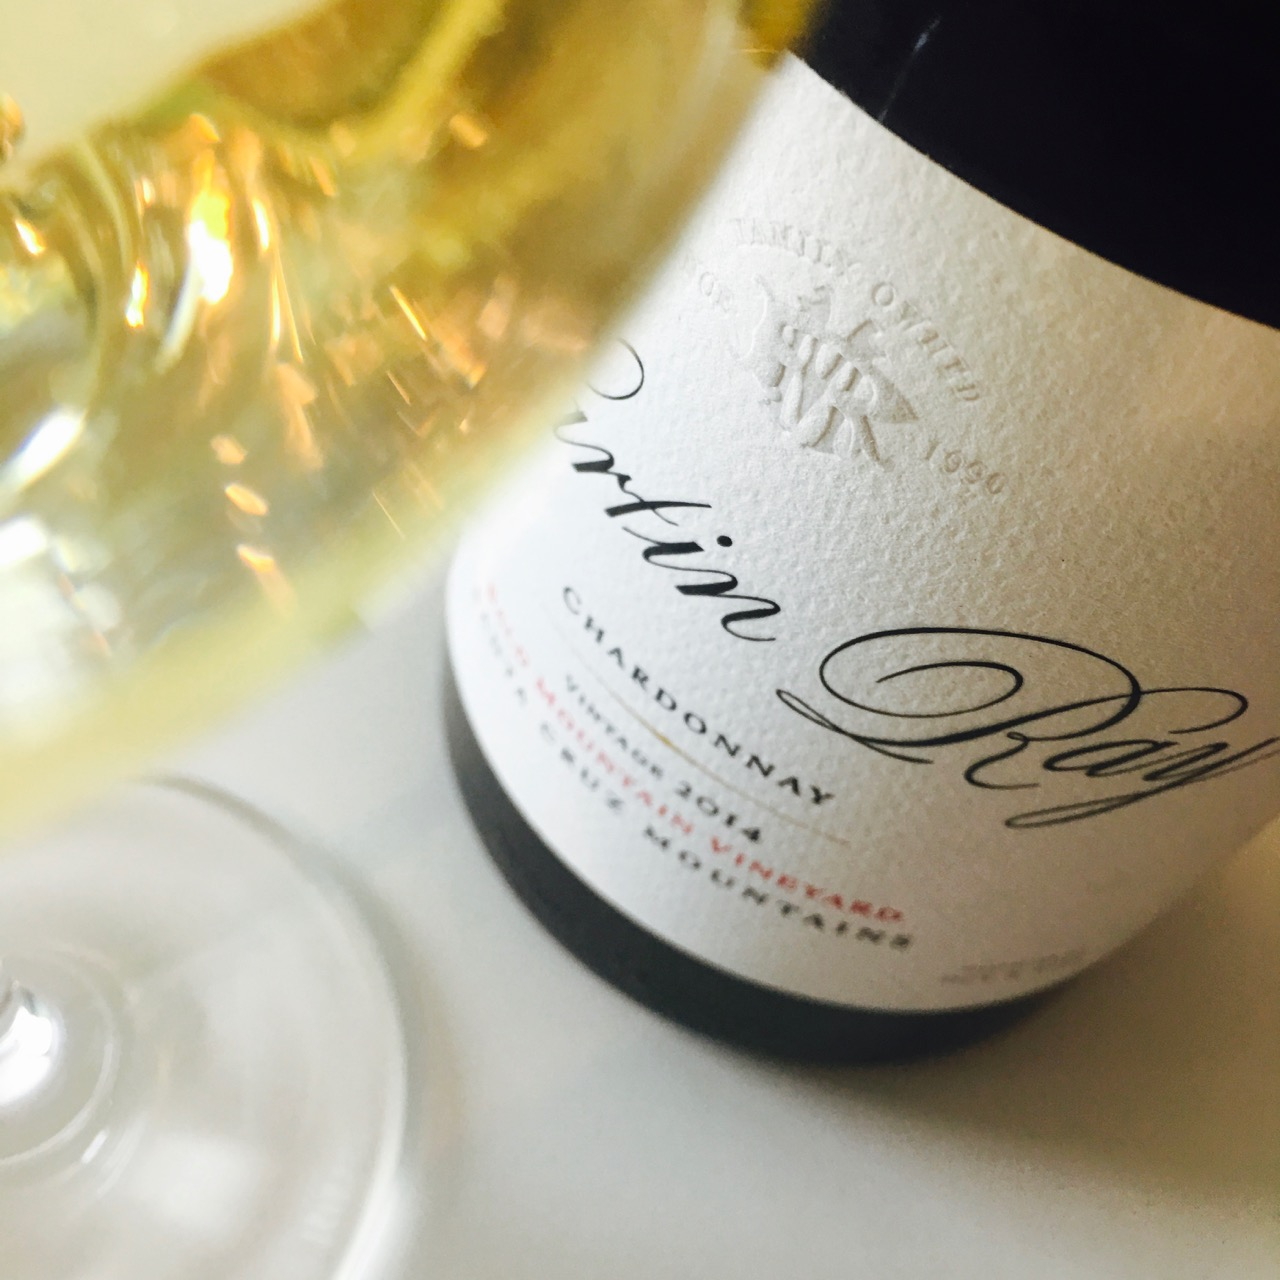 2014 Martin Ray Winery Chardonnay Bald Mountain Vineyard Santa Cruz Mountains